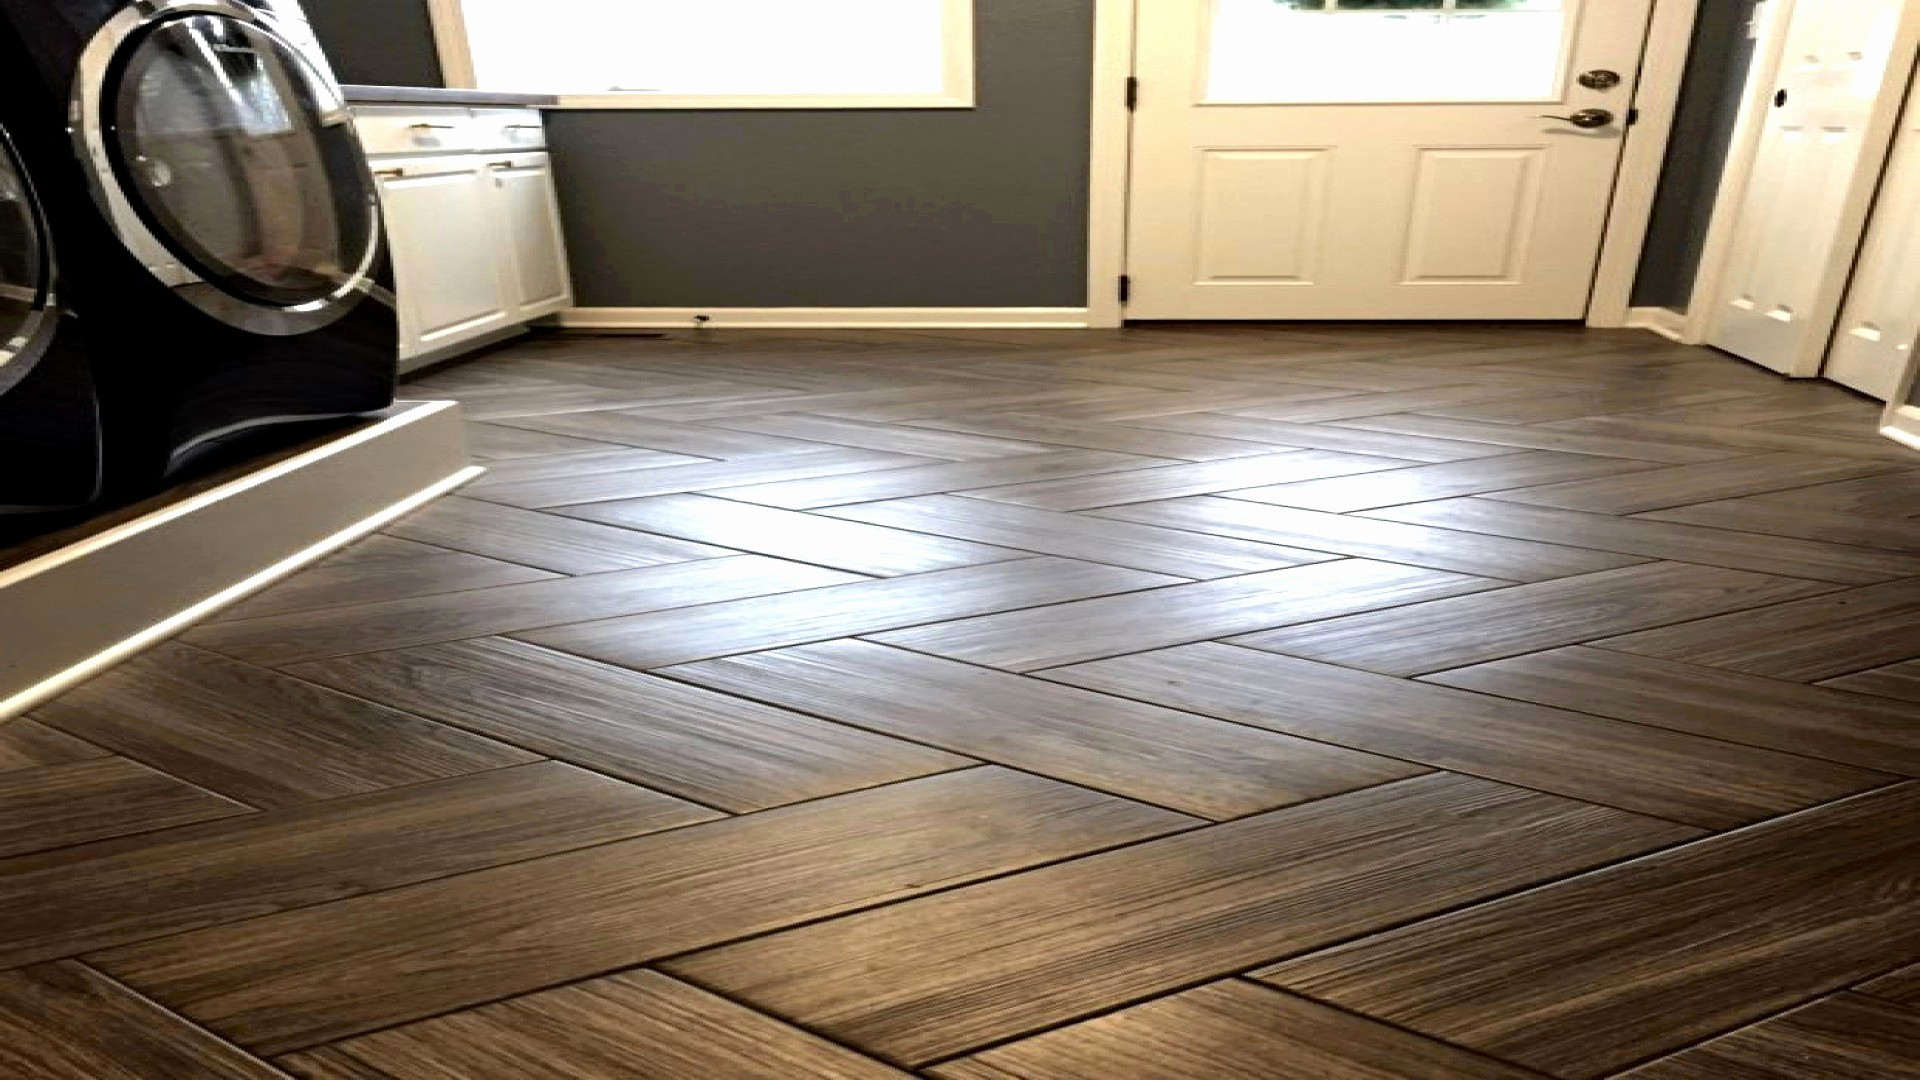 best hickory hardwood flooring of 19 awesome hardwood flooring for sale photograph dizpos com inside hardwood flooring for sale best of 52 luxury wood flooring sale 52 s photograph